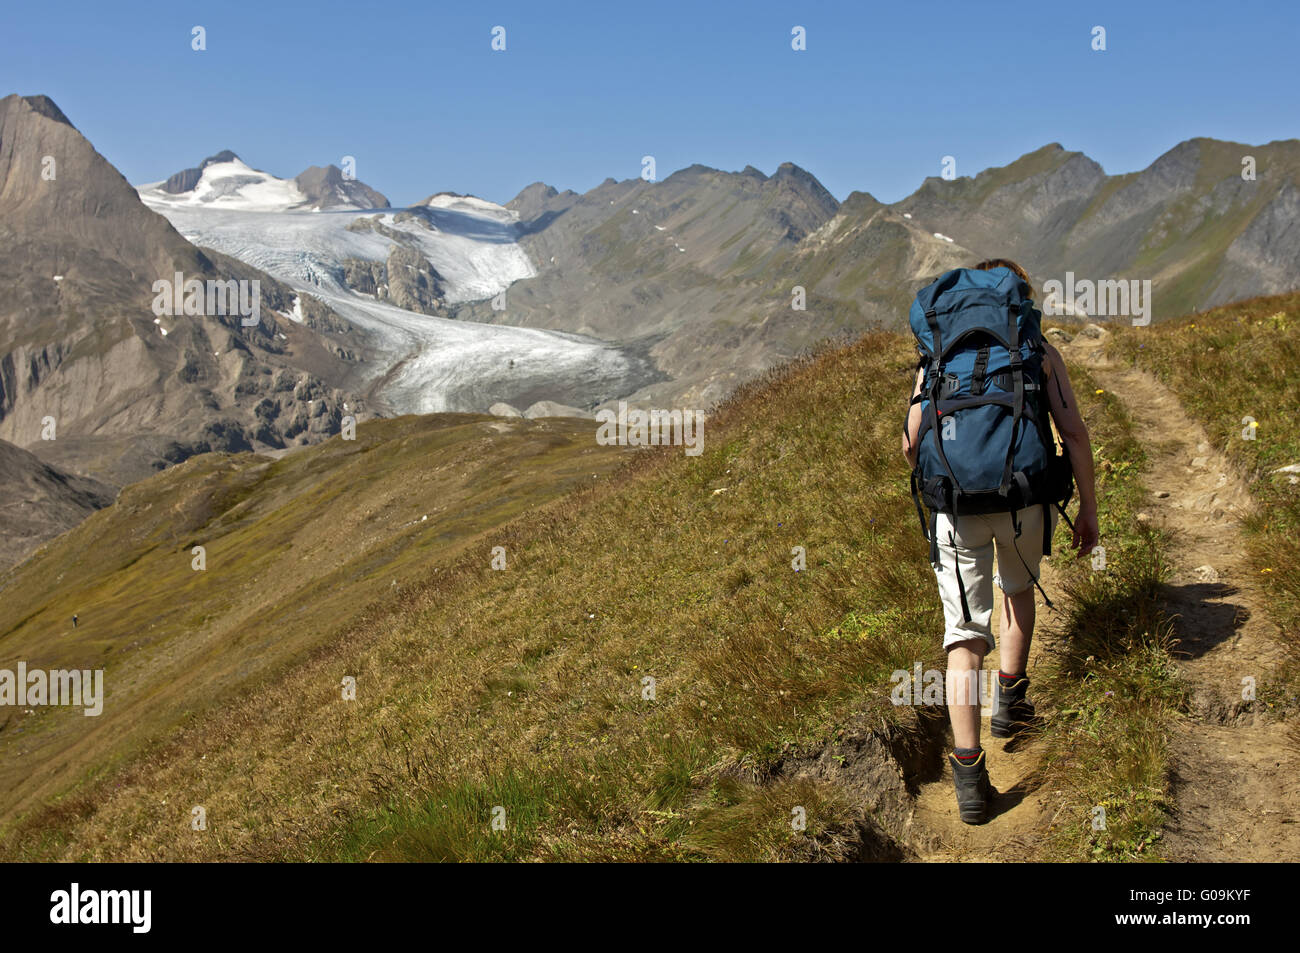 Hiker on a hiking tour, Valais, Switzerland - Stock Image